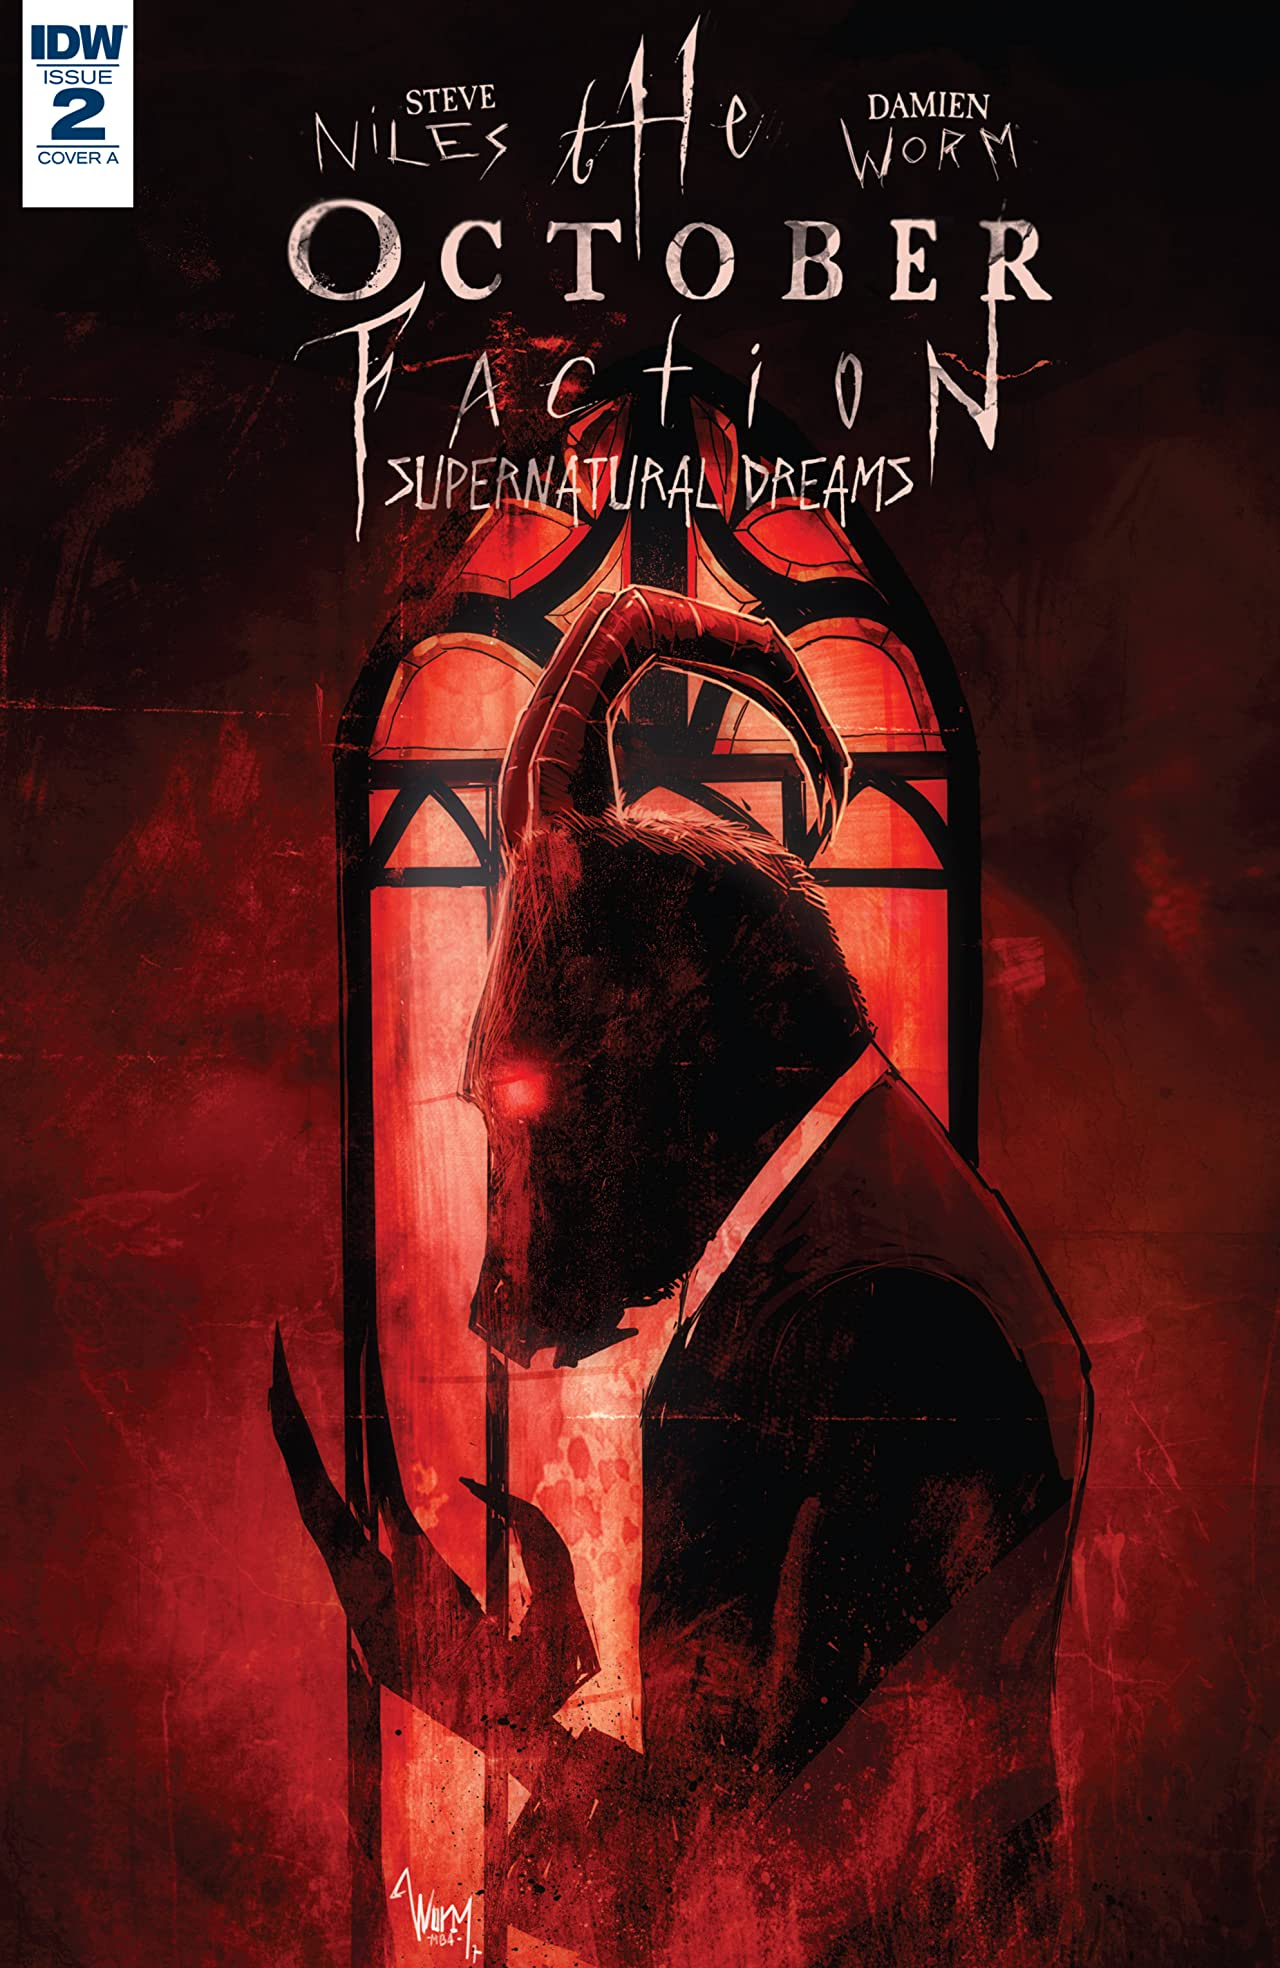 The October Faction: Supernatural Dreams #2